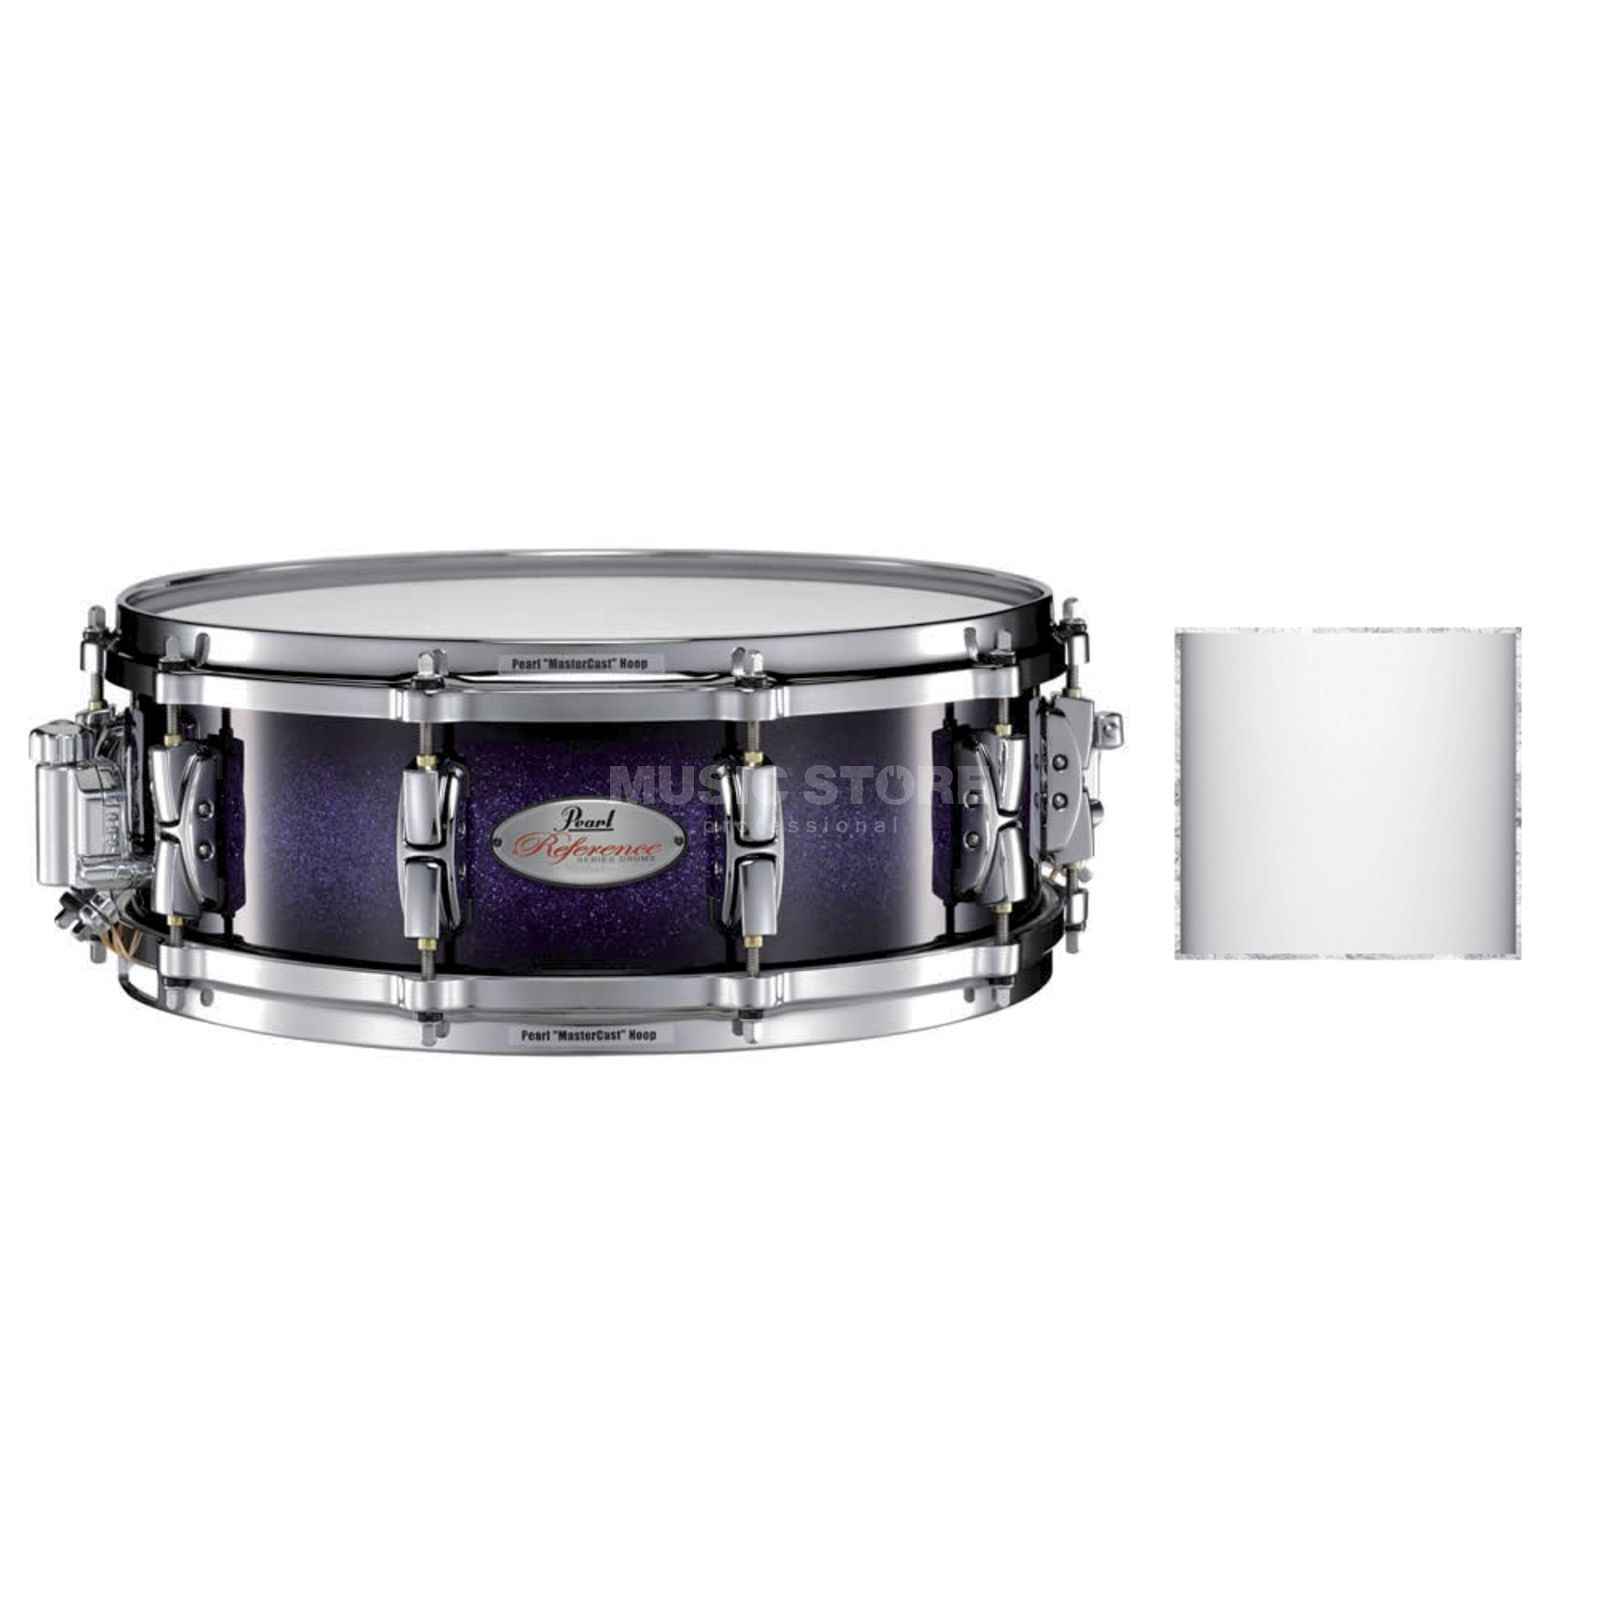 "Pearl RF1450S/C Reference Snare 14""x5"", Arctic White #110 Produktbillede"